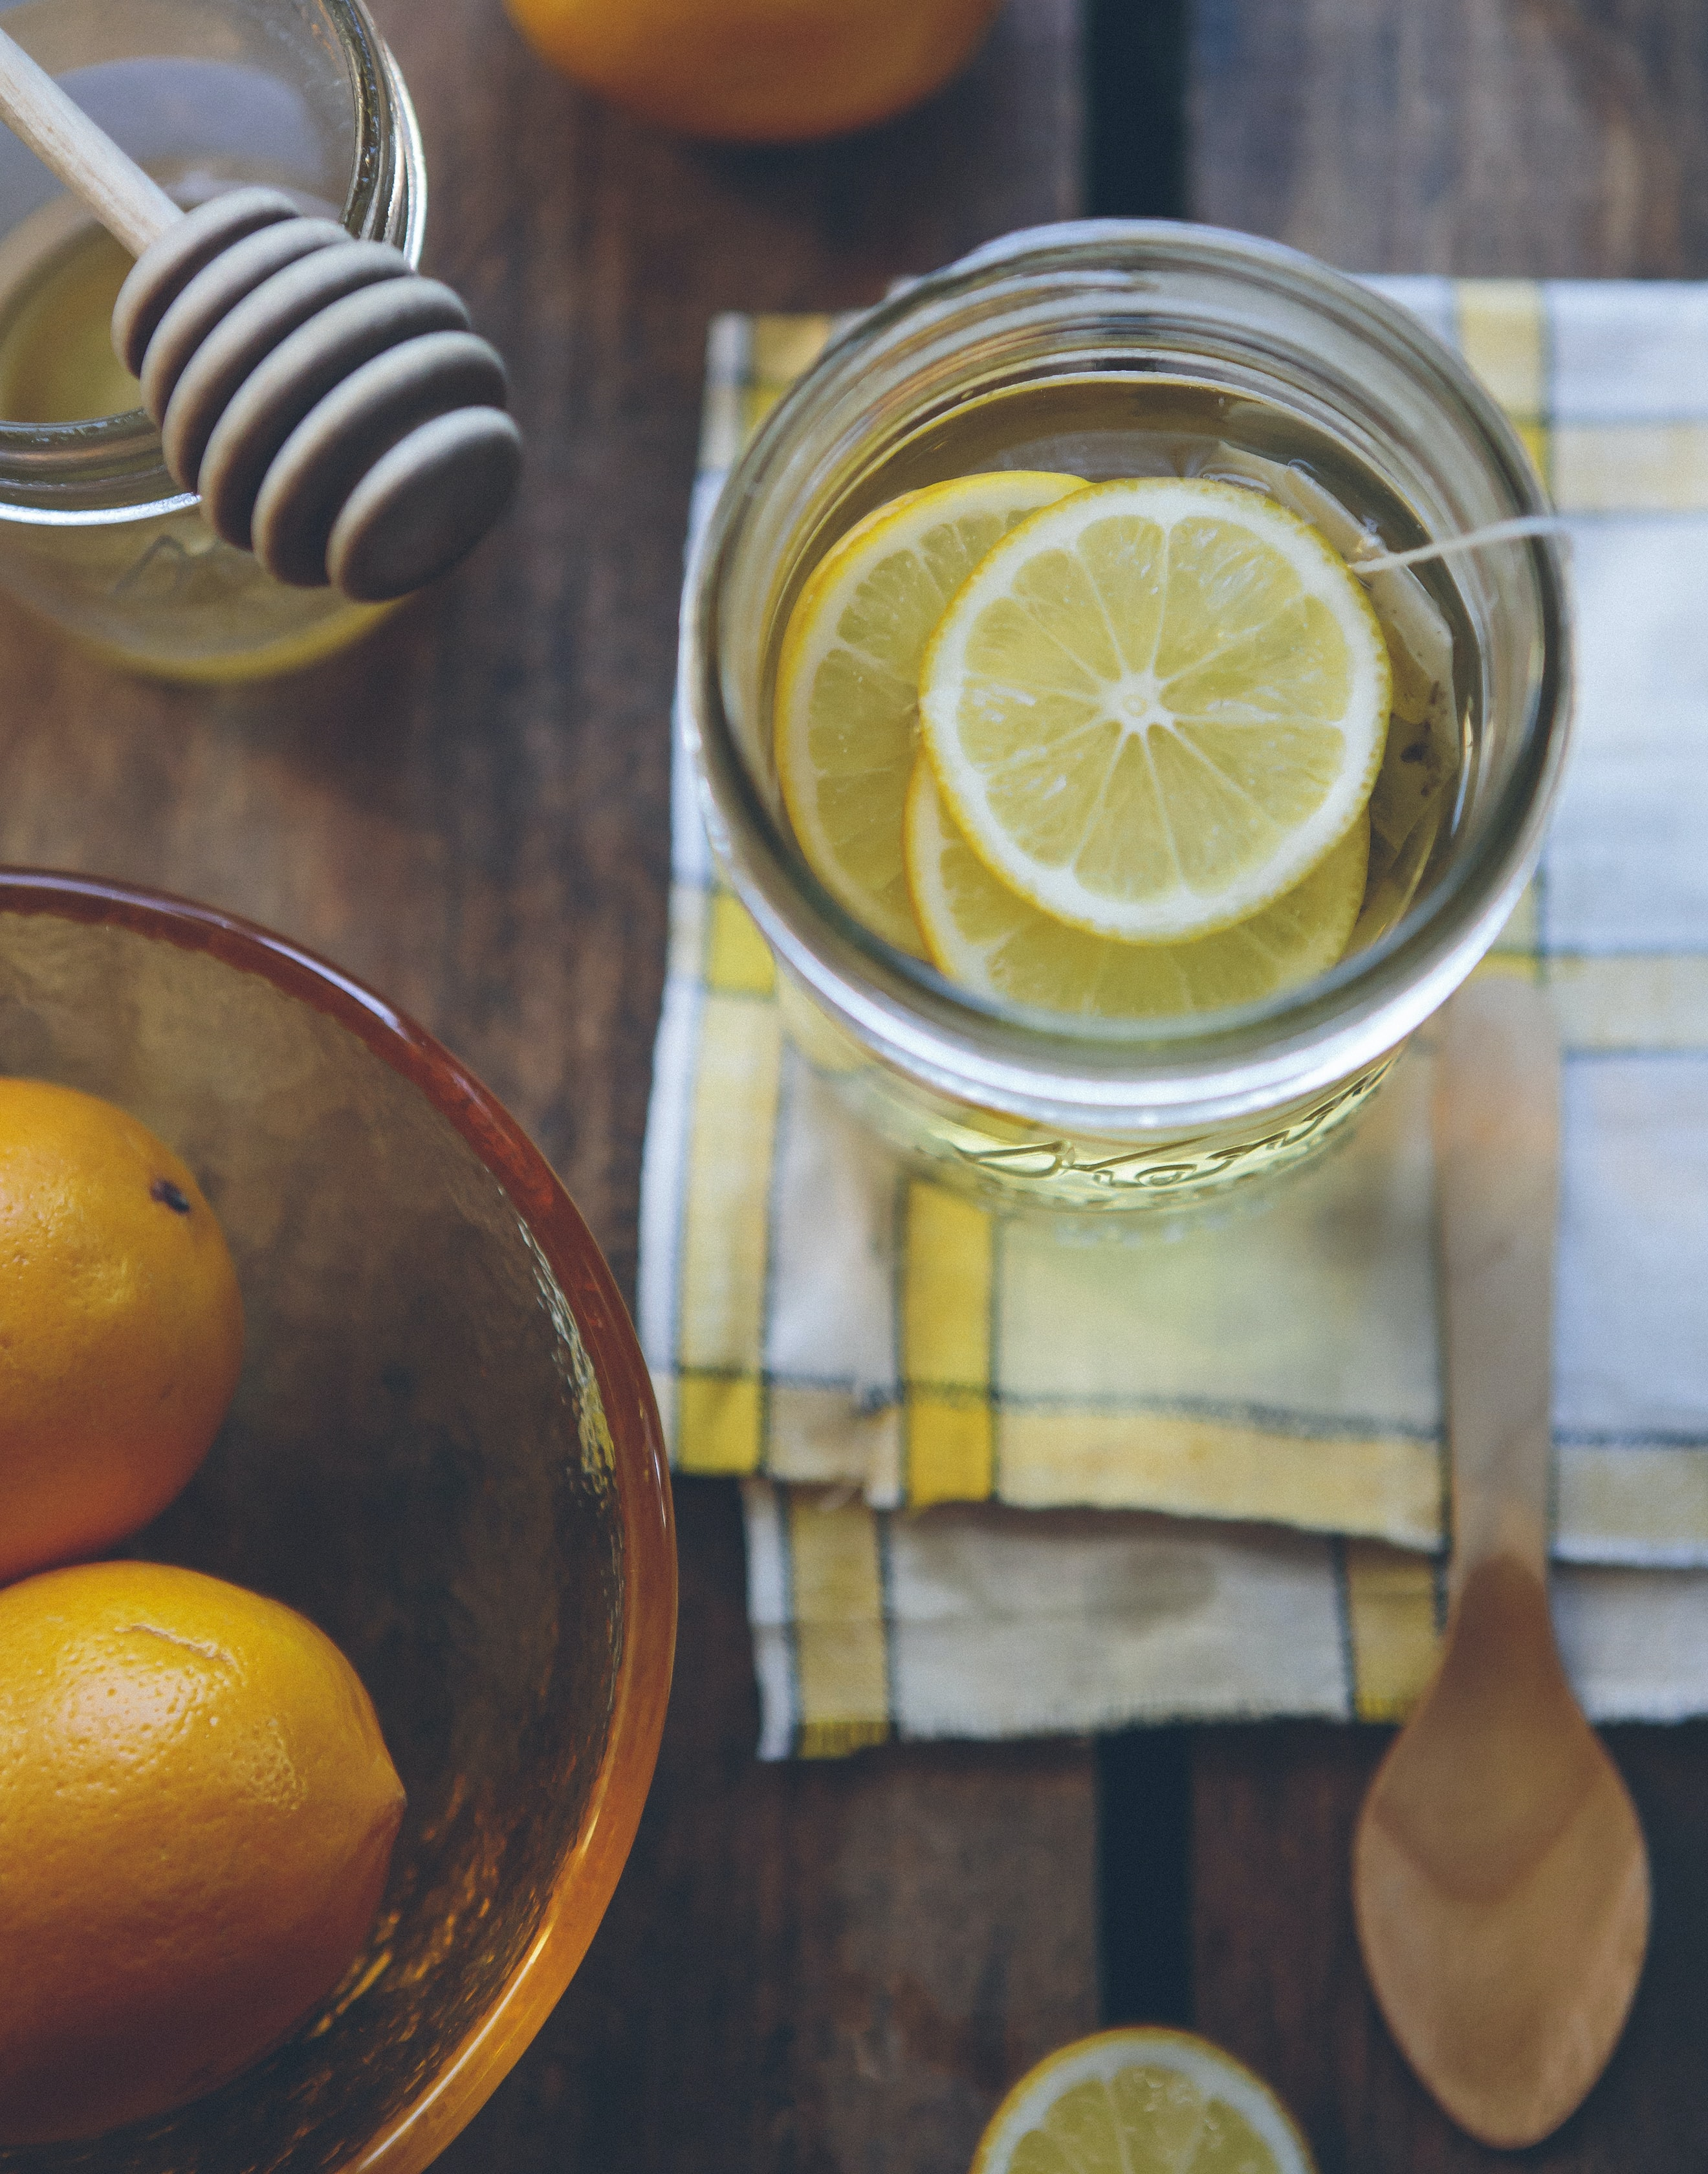 Mason jar of tea infused with lemons and honey on a kitchen table